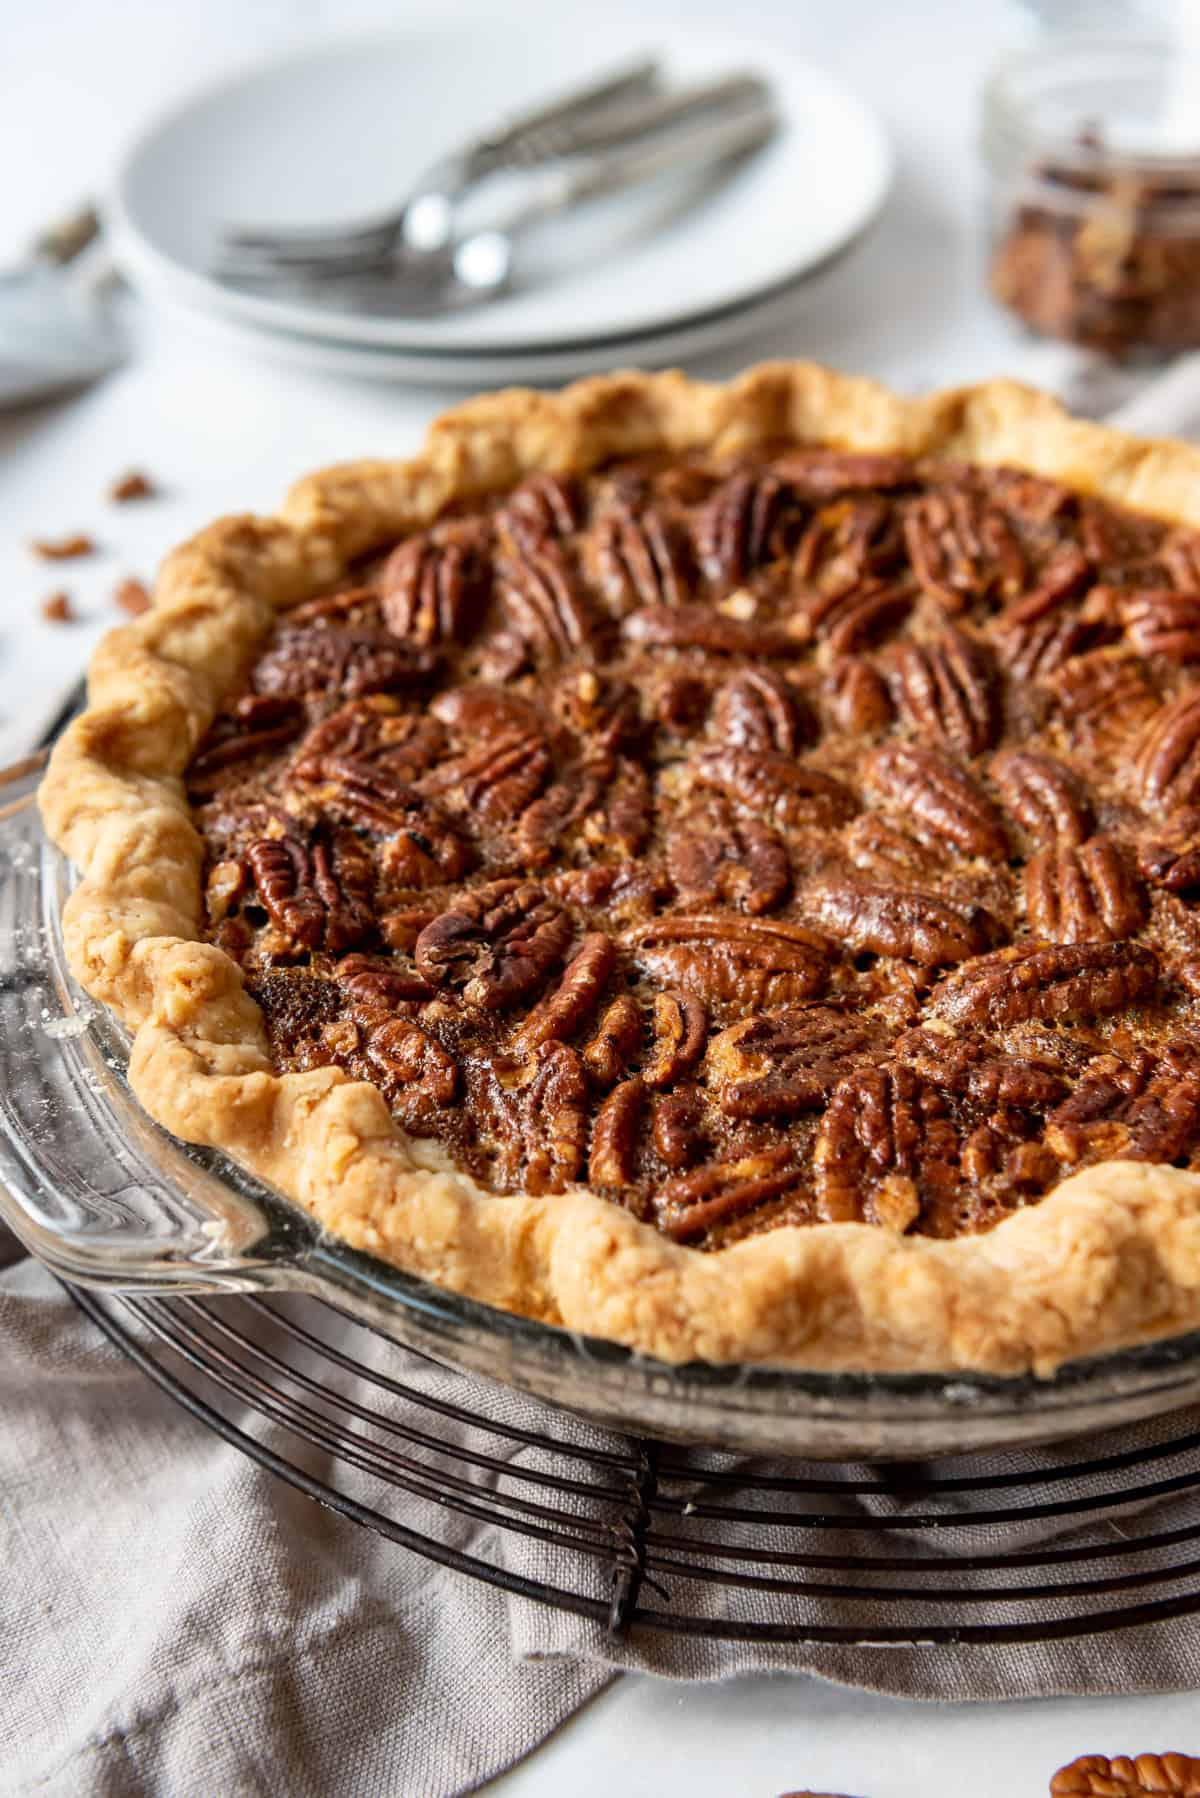 a classic American pecan pie in front of dessert plates with forks.